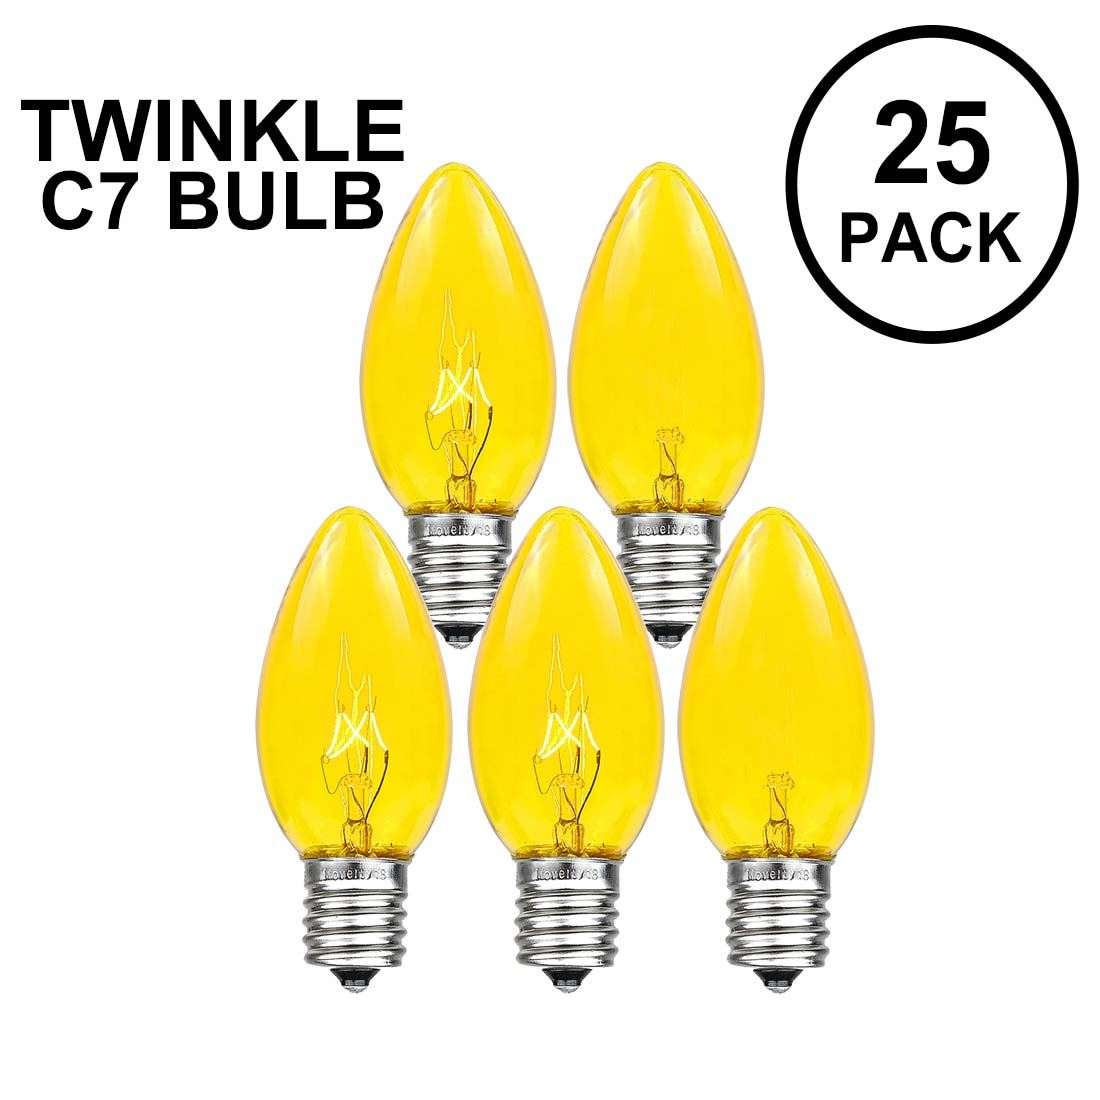 Picture of Yellow Twinkle C7 7 Watt Bulbs 25 Pack